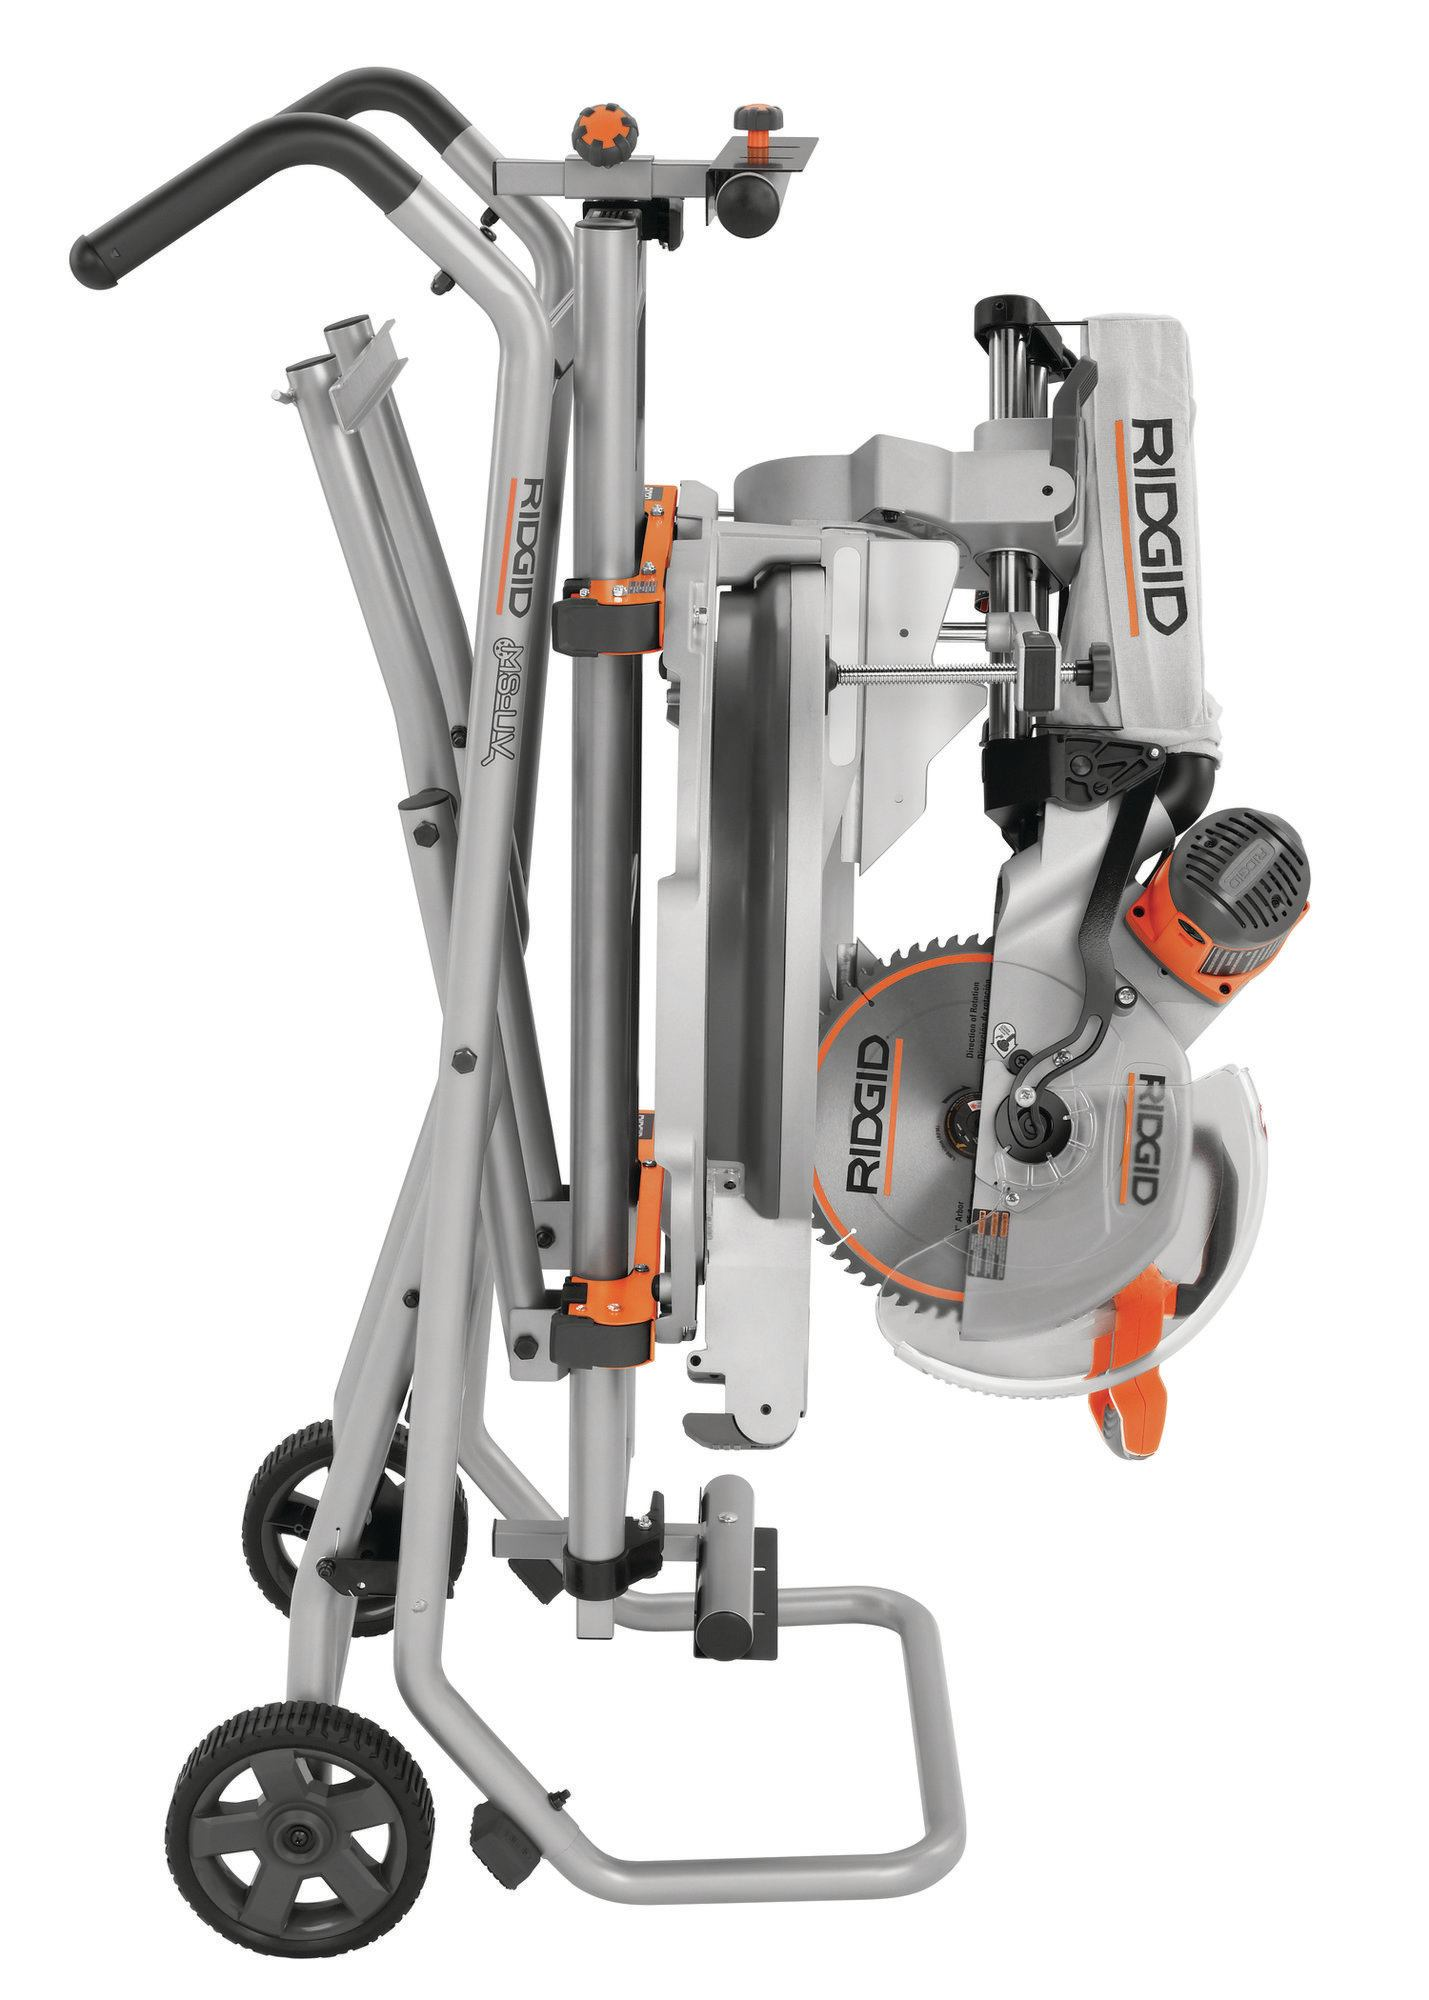 Ridgid Ac9945 Jlc Online Saws Benches And Tool Stands